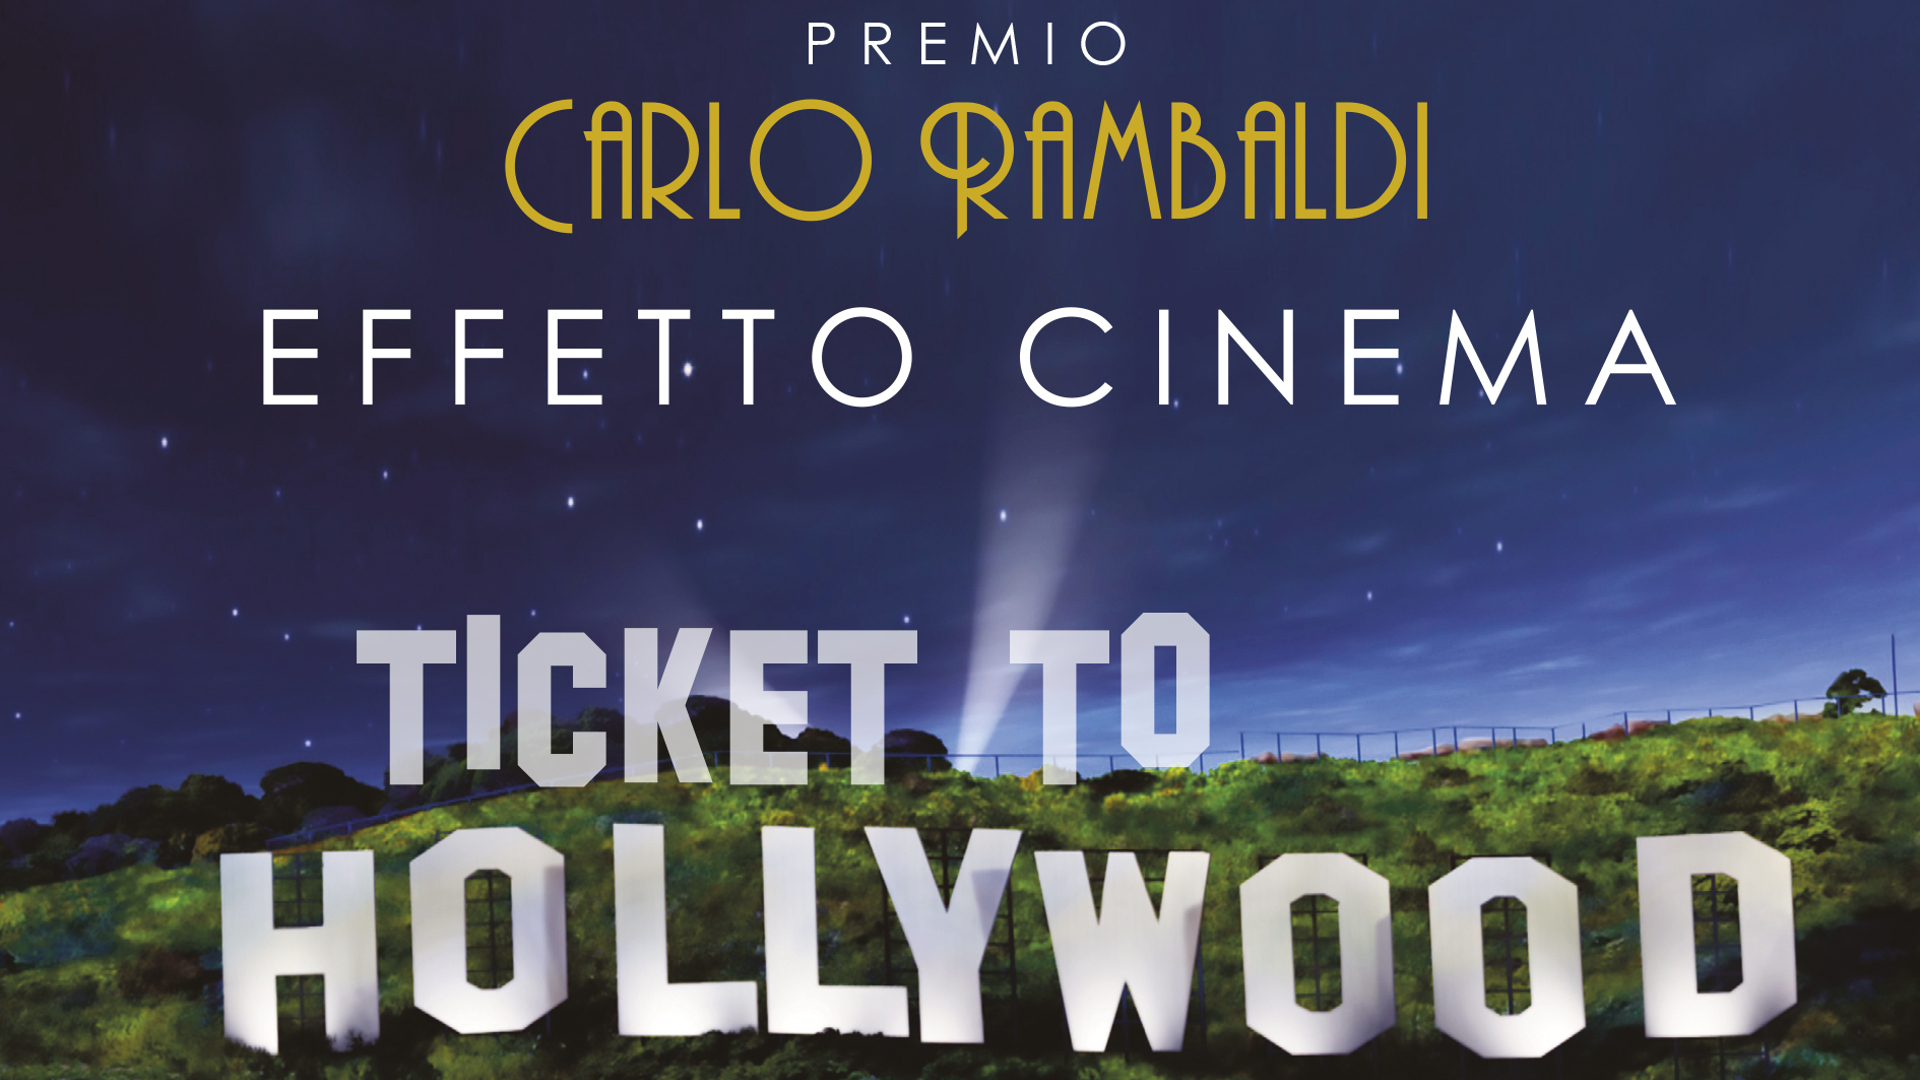 home page - ticket to hollywood - 1920x1080